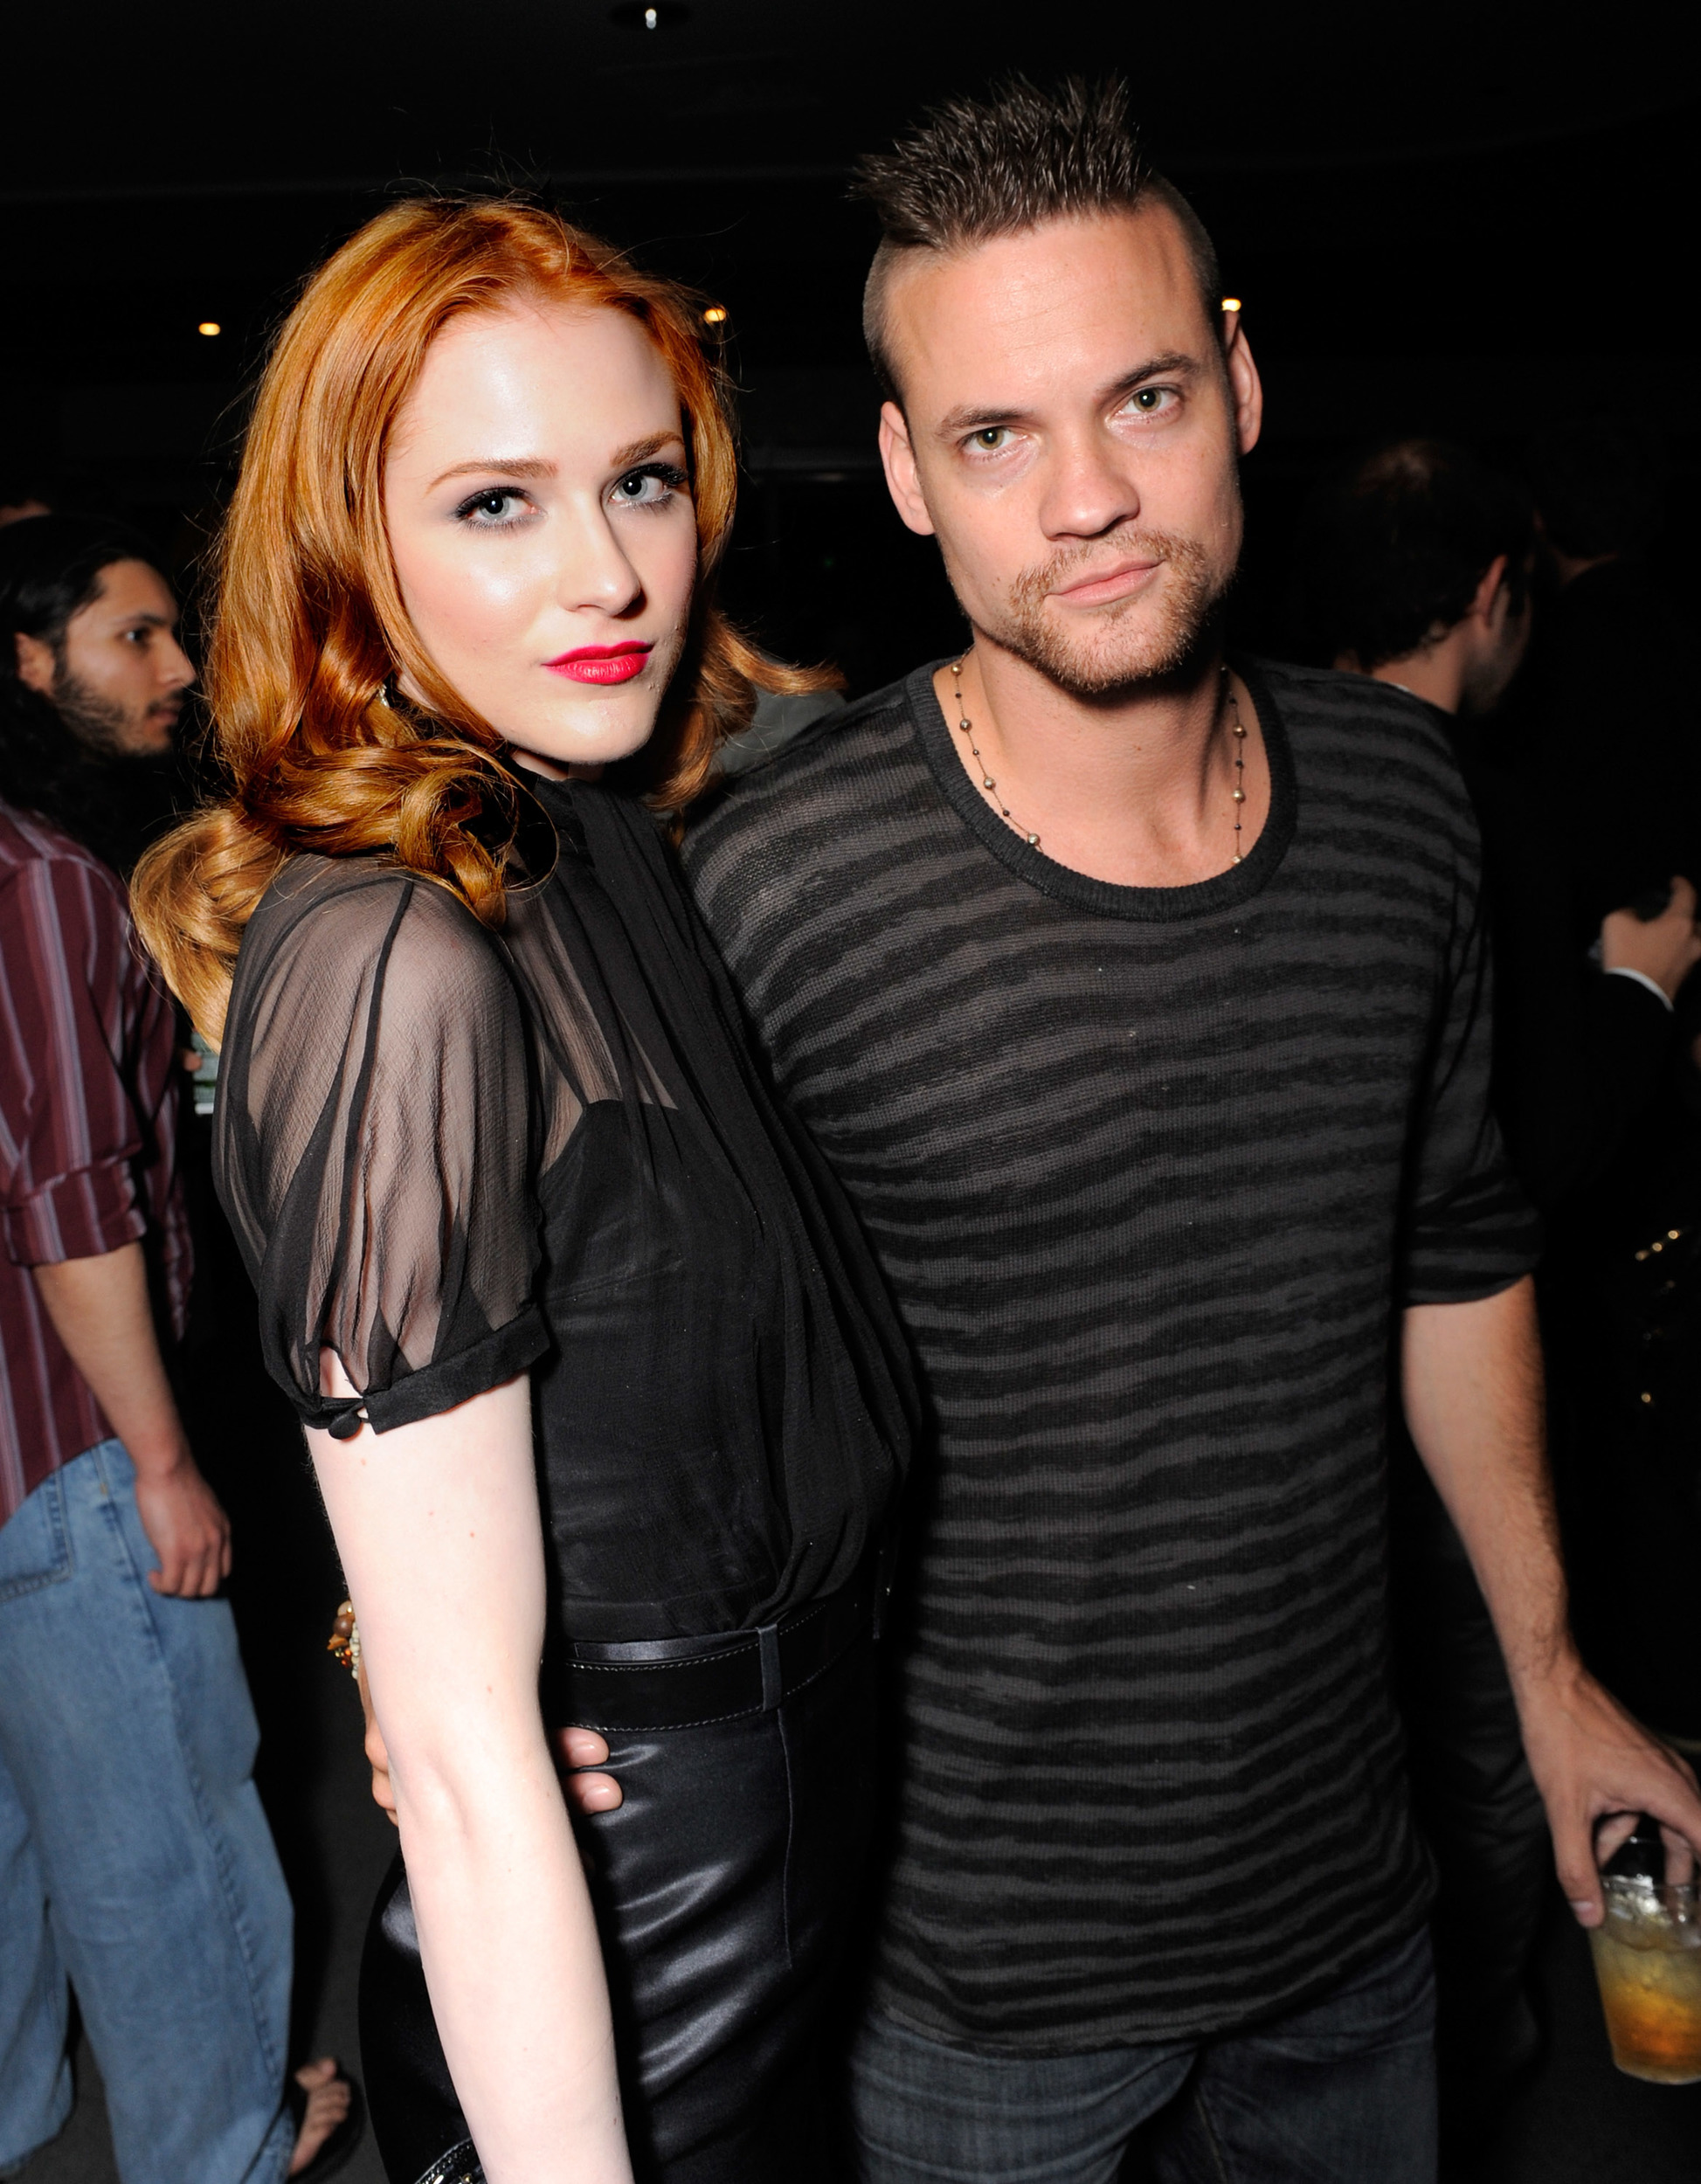 maggie and shane west are they dating